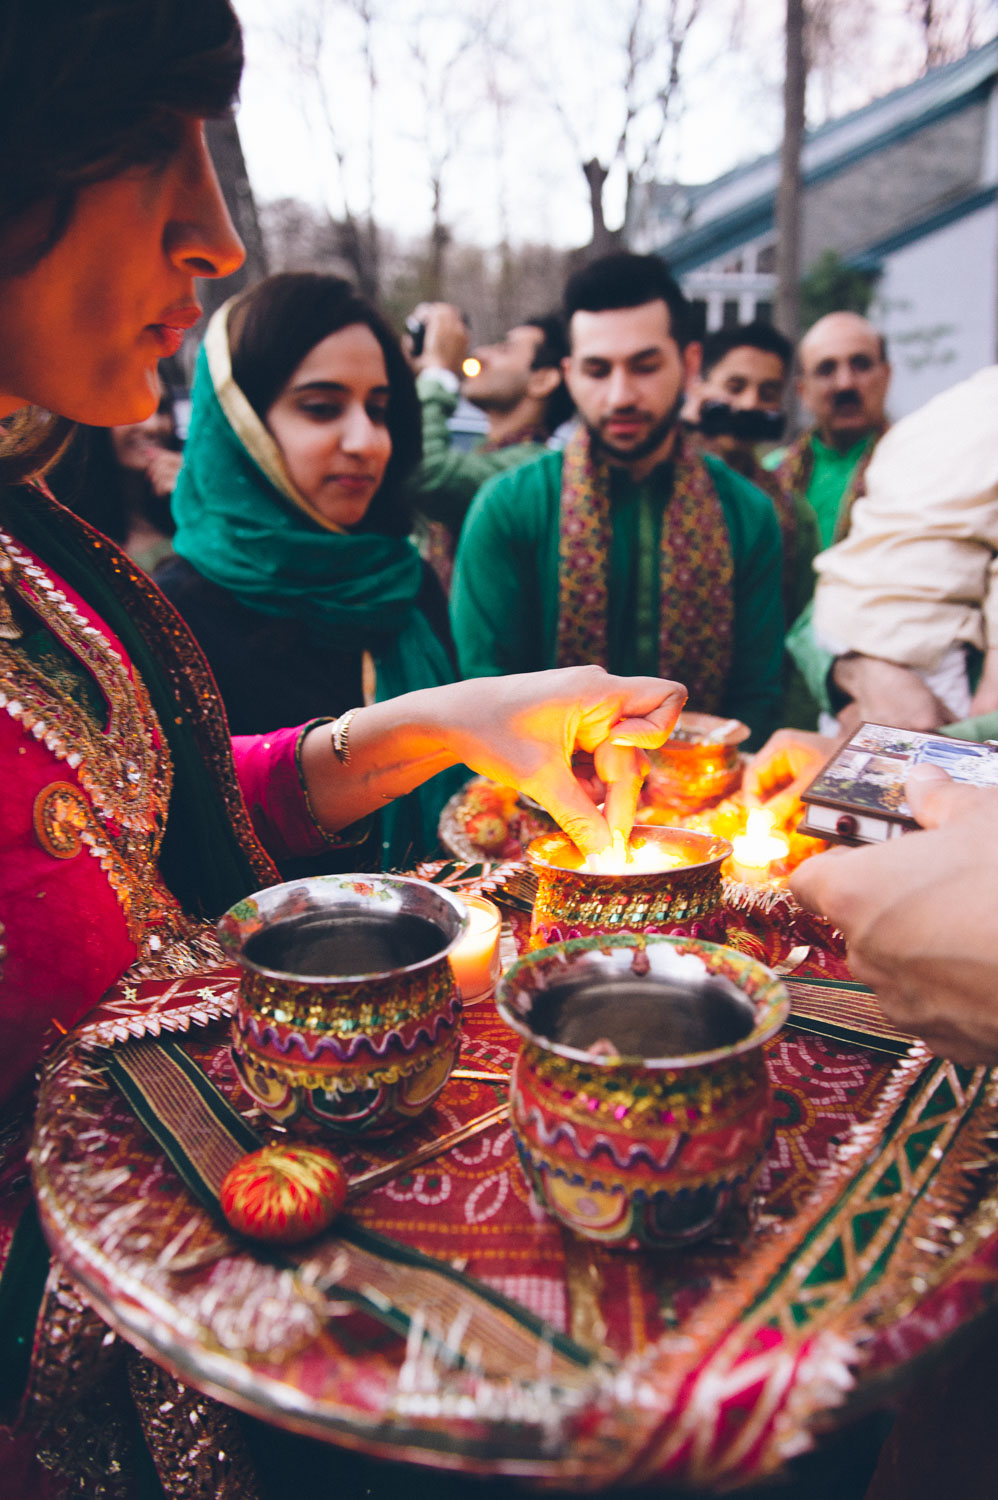 Pakistani Wedding Ritual of candle lighting